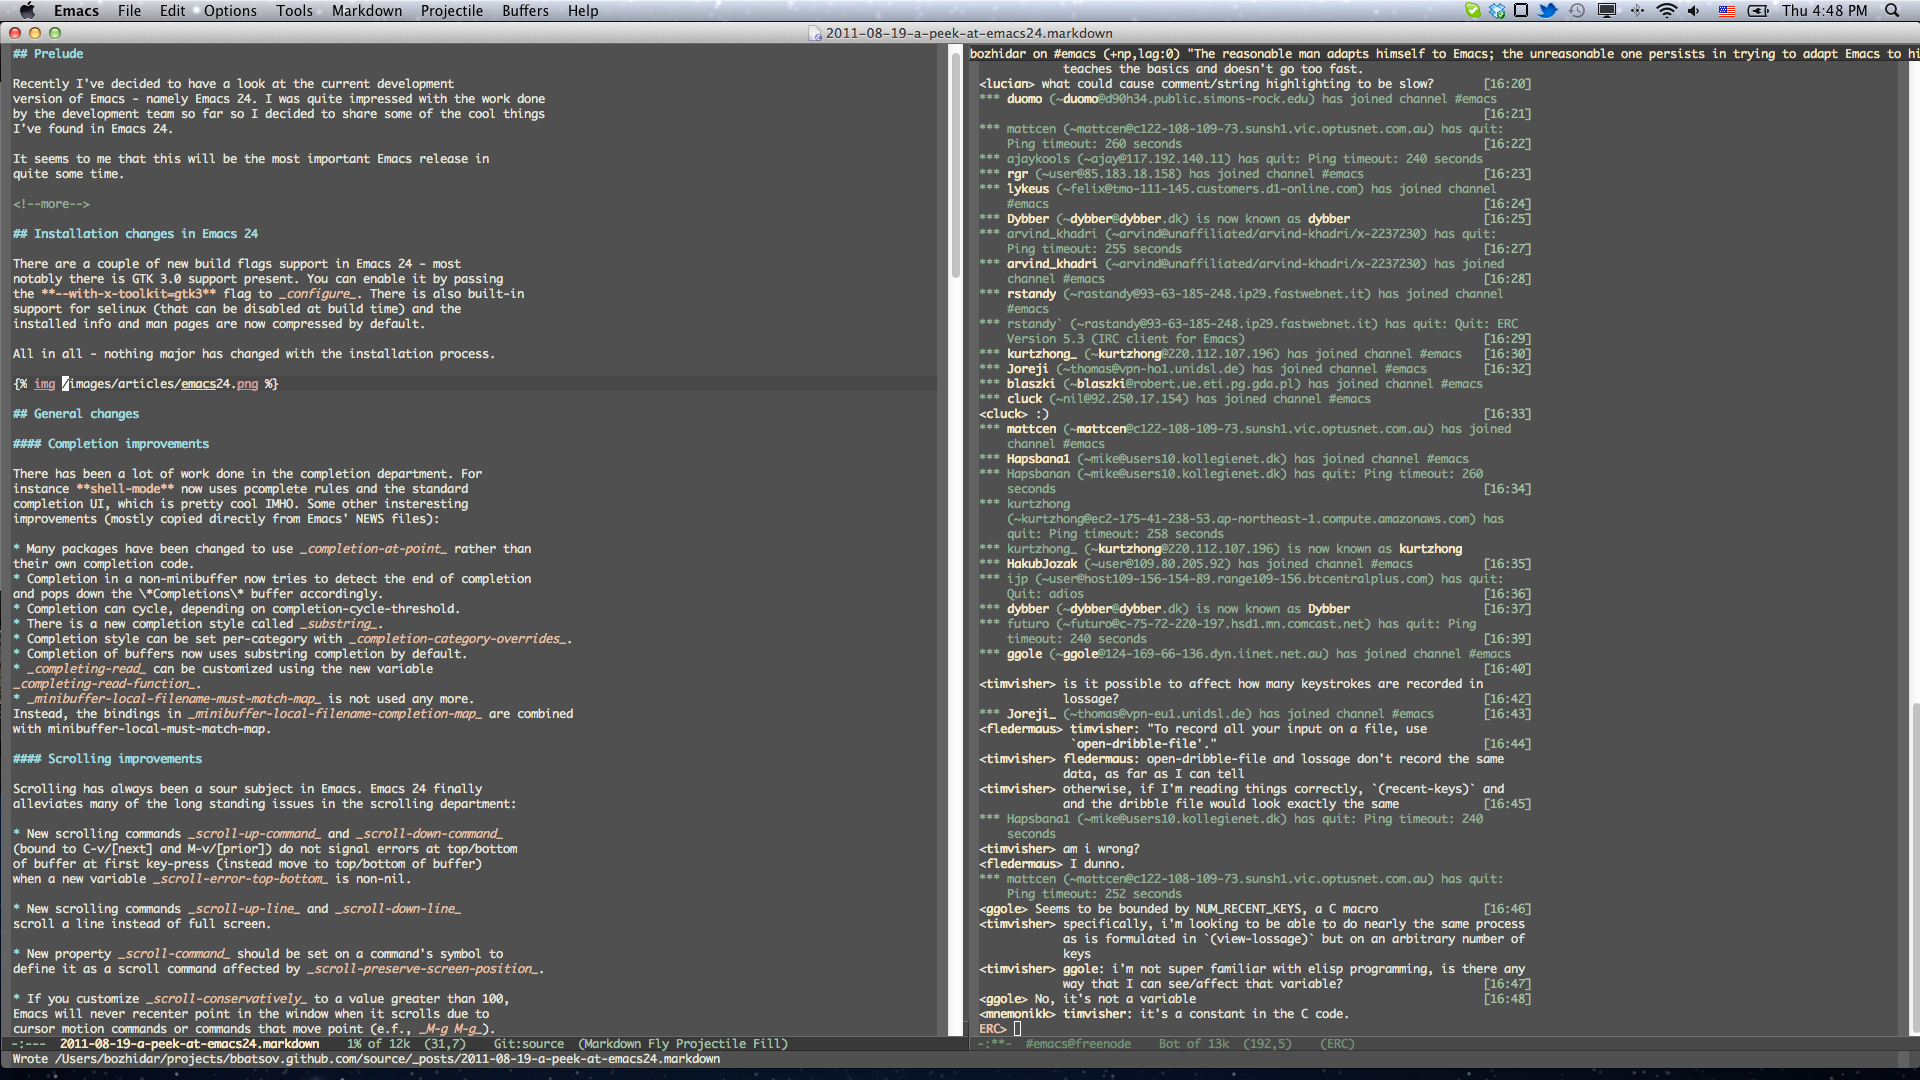 emacs paste from clipboard